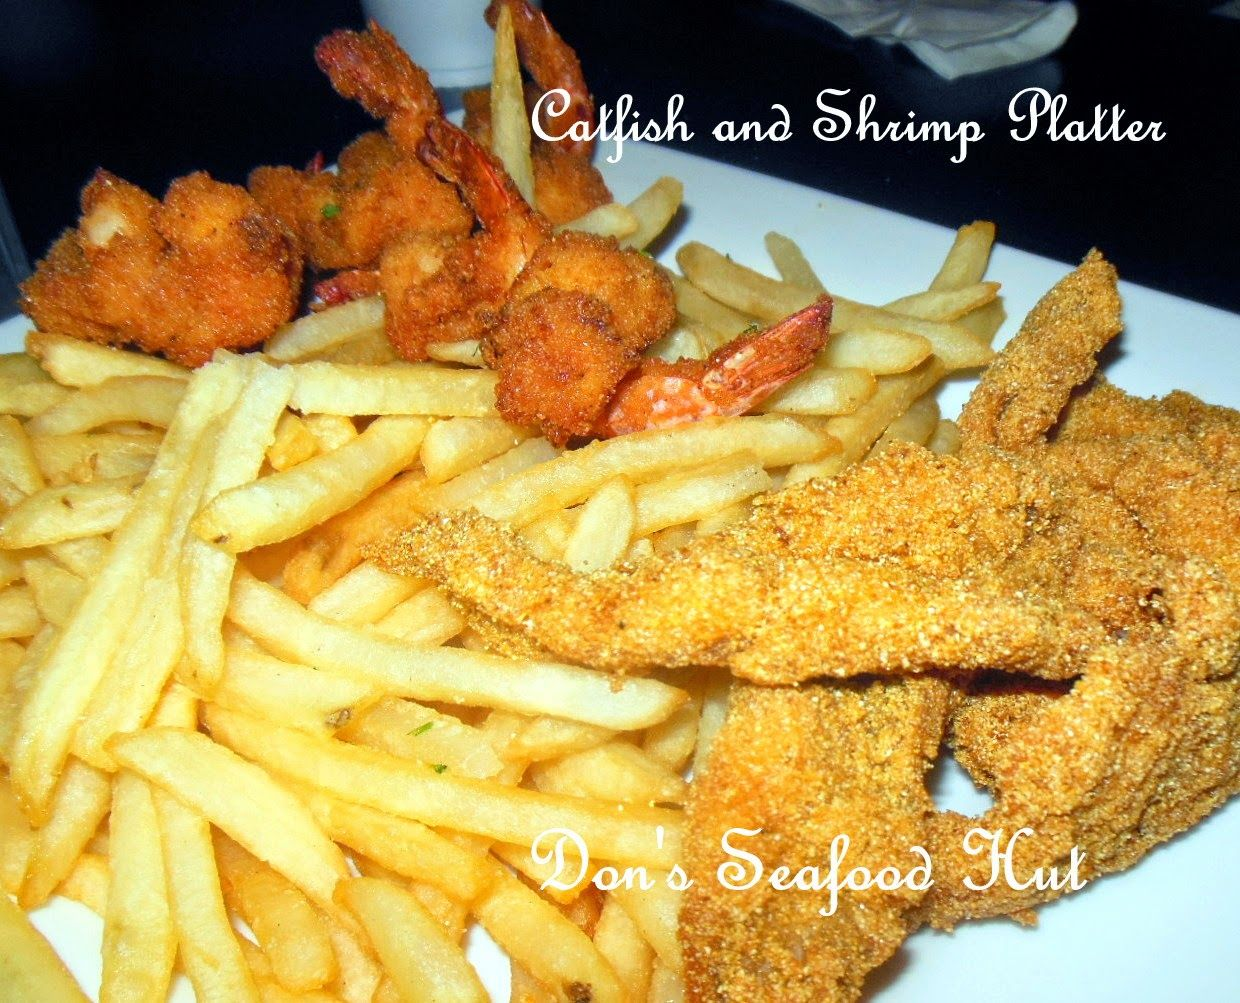 Fleur de Lolly: Dining Out in New Orleans - Don's Seafood Hut